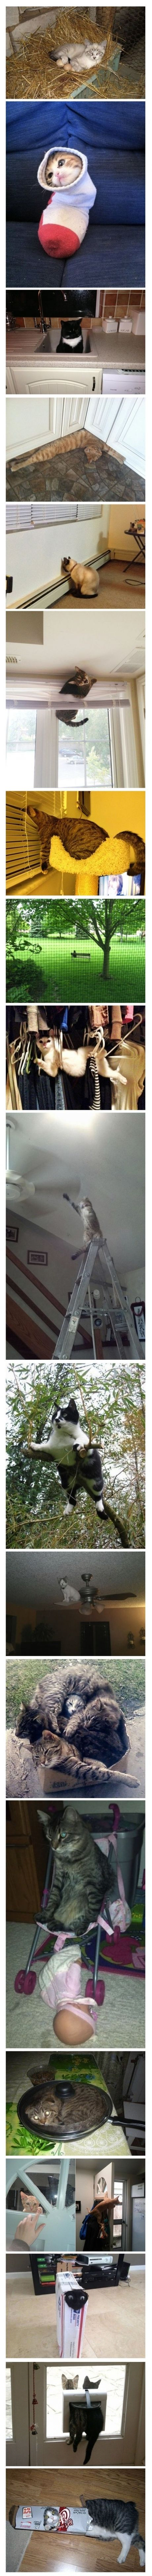 Kitties in funny places